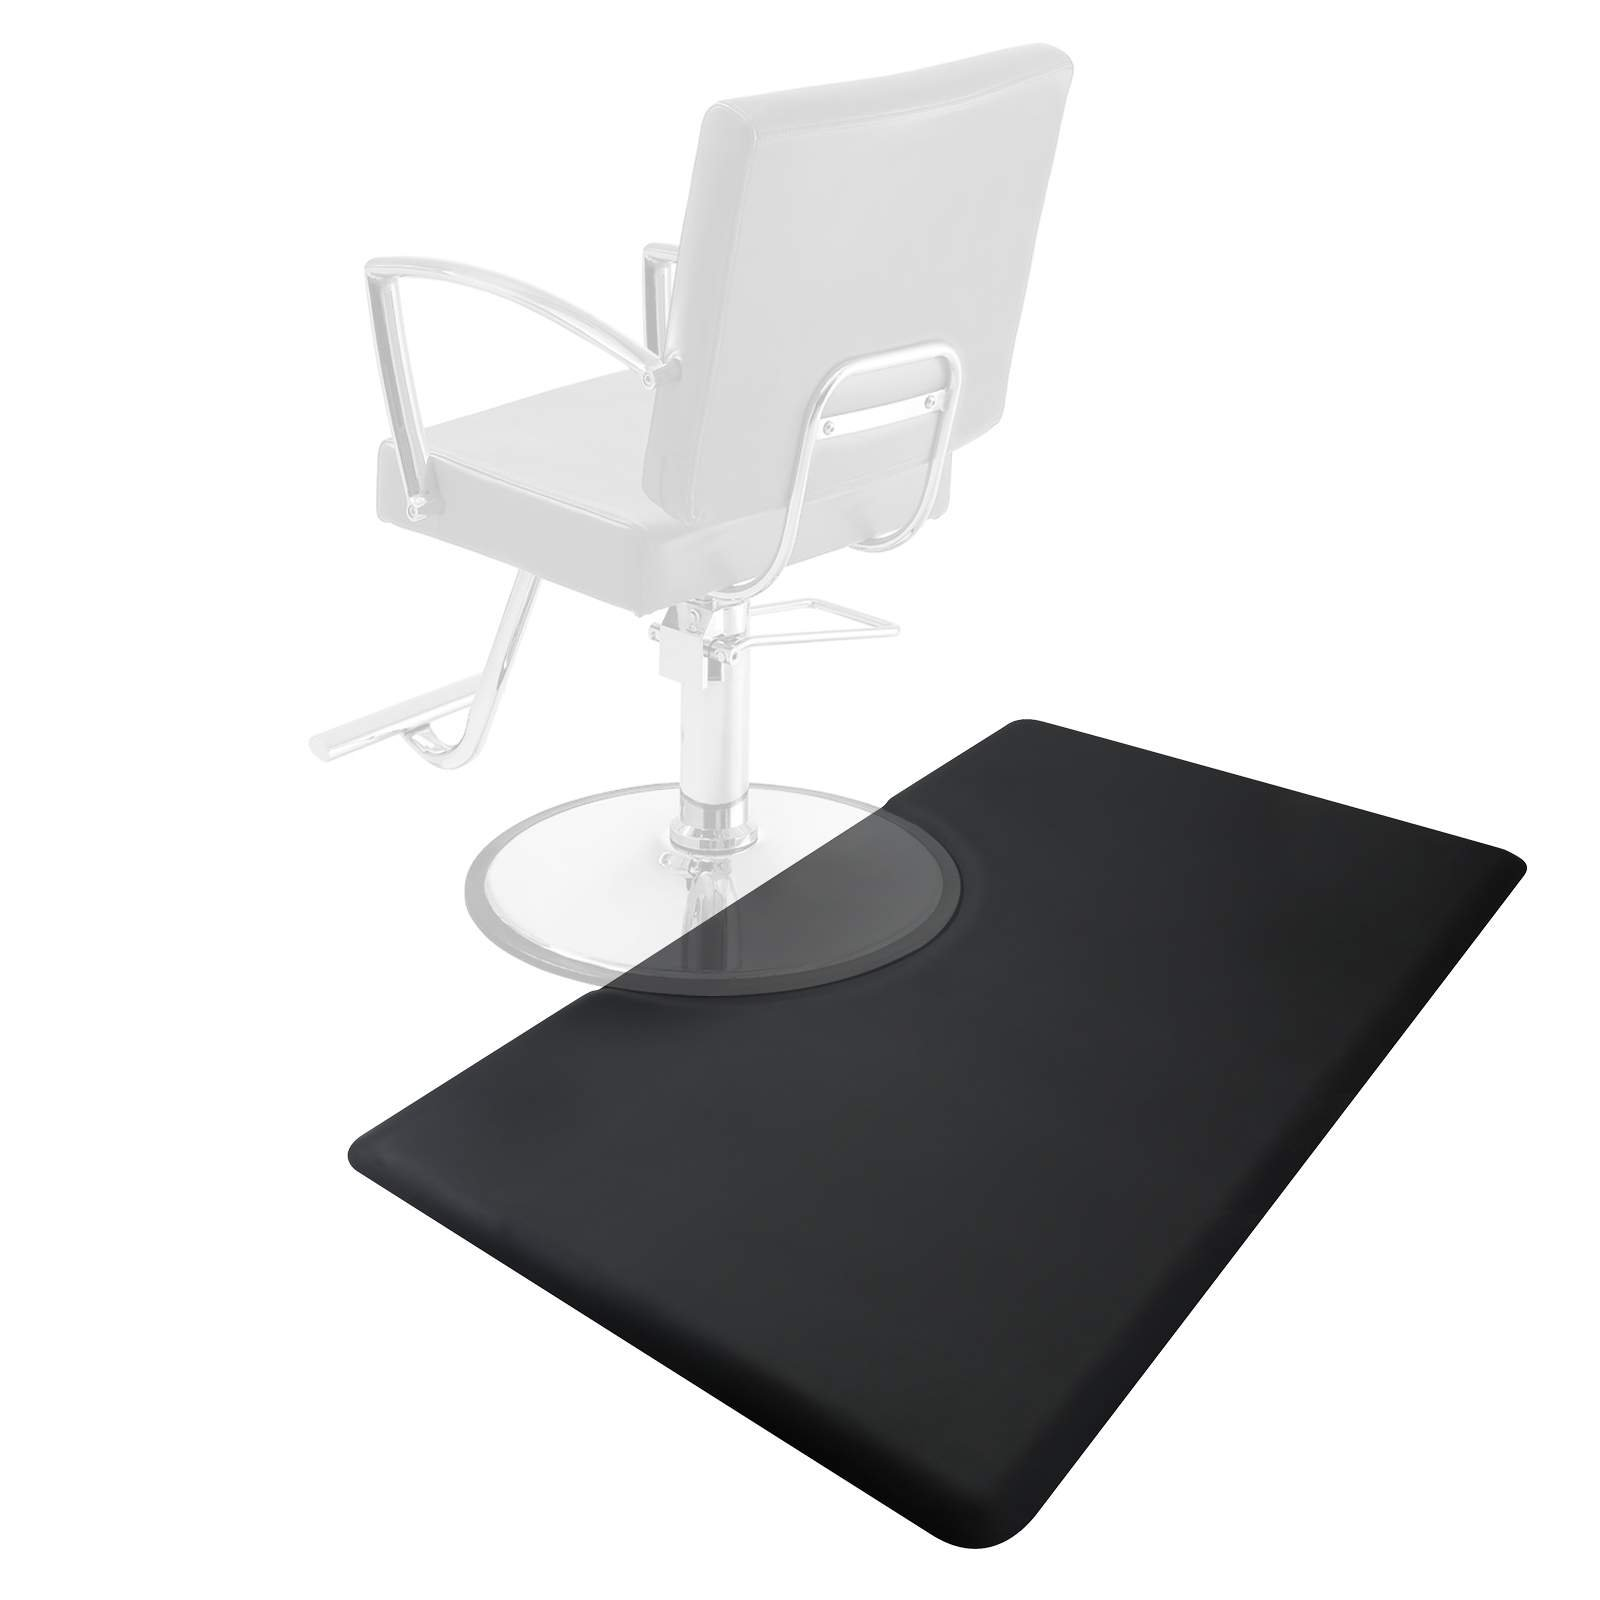 Saloniture 3 ft. x 5 ft. Salon & Barber Shop Chair Anti-Fatigue Floor Mat - Black Rectangle - 7/8 in. Thick by Saloniture